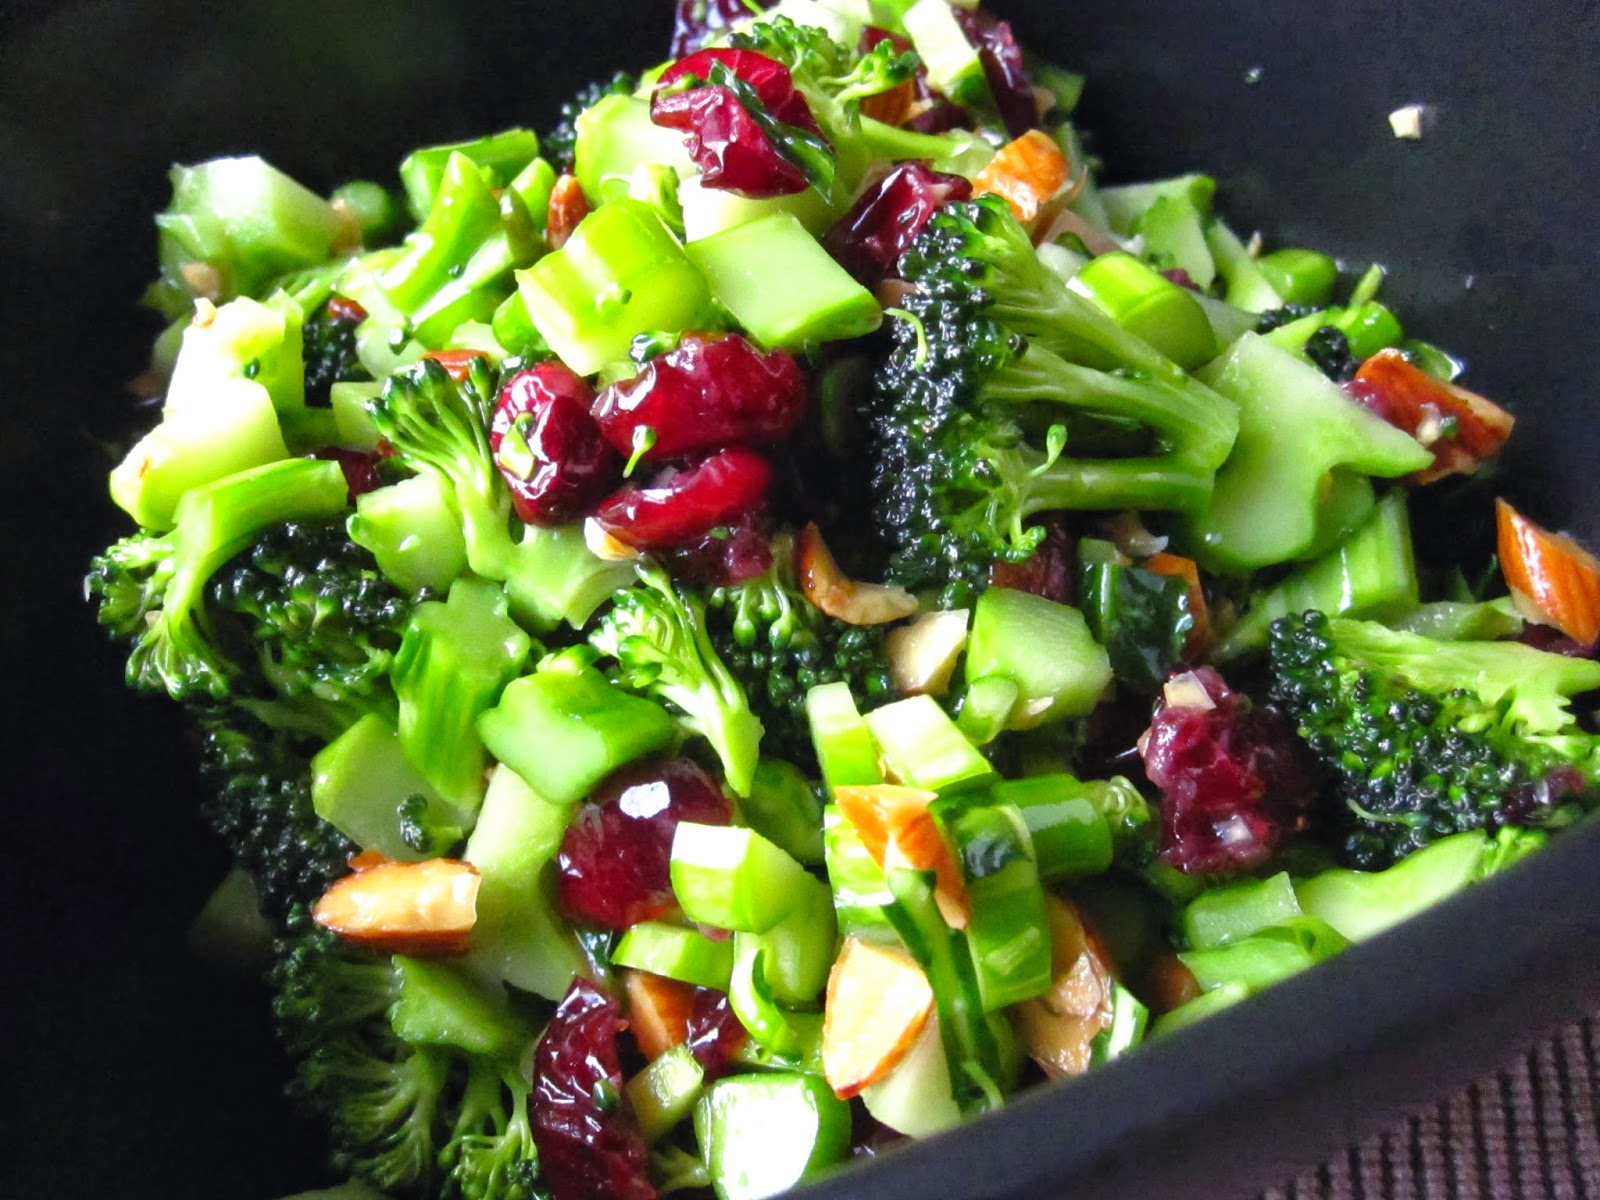 Vegetable in diet three recipes salad with broccoli healthy salad